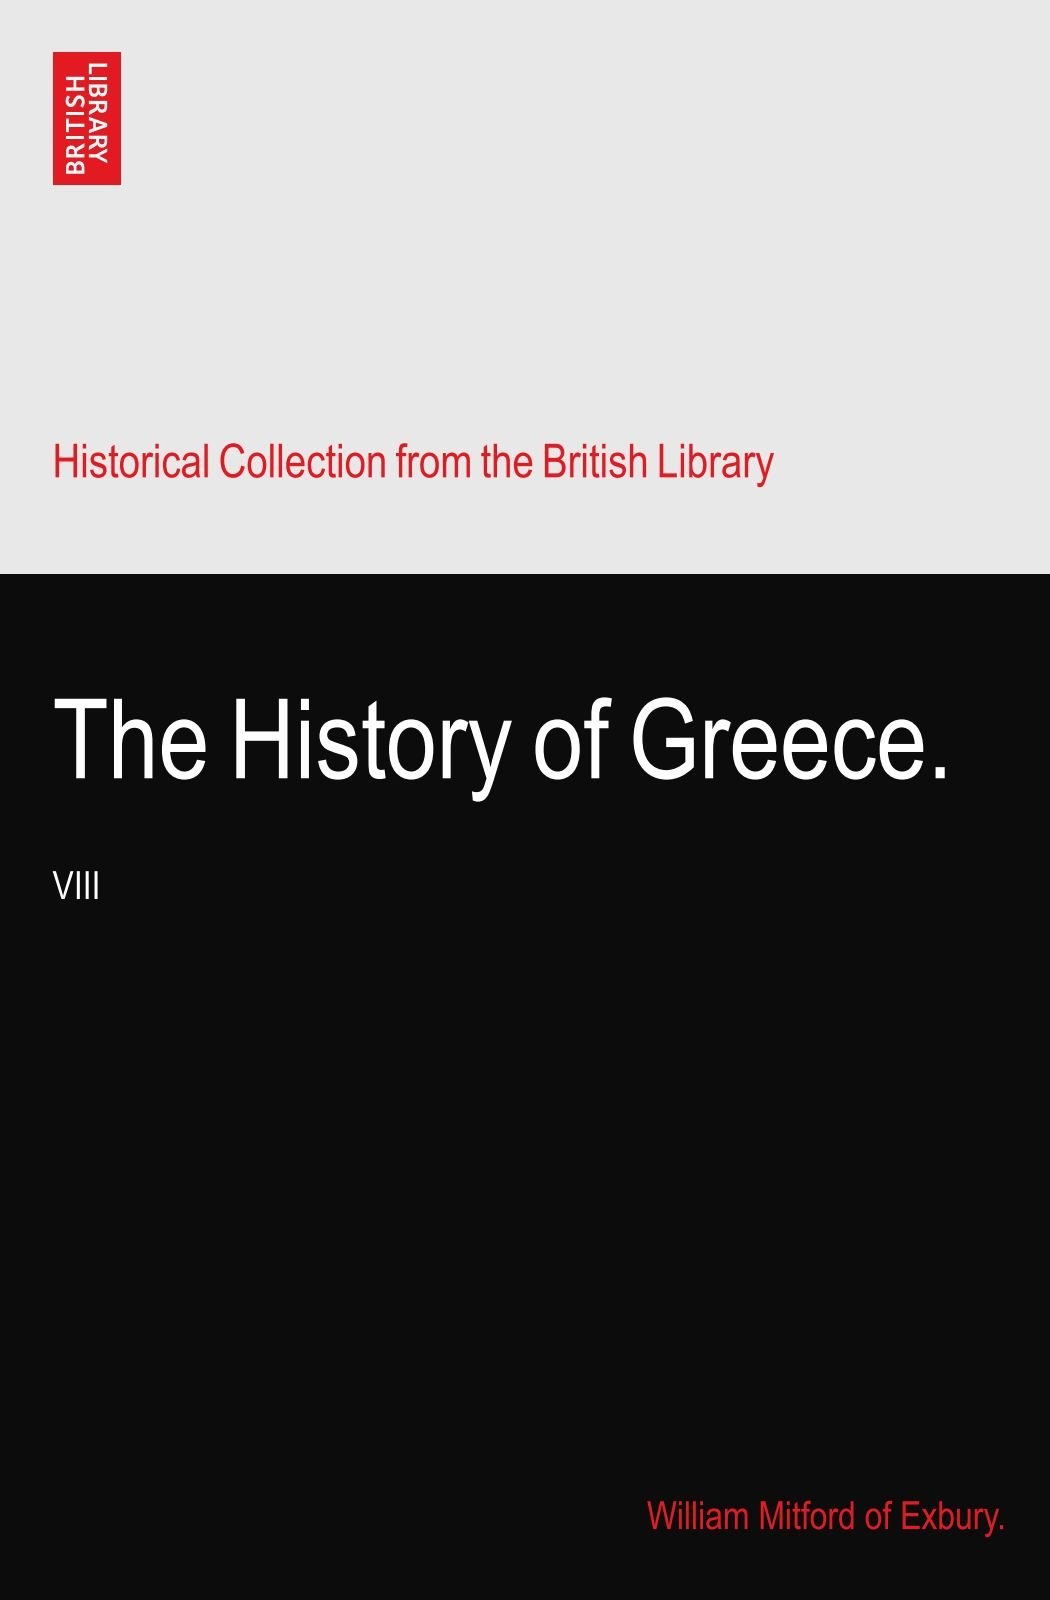 Download The History of Greece.: VIII ebook